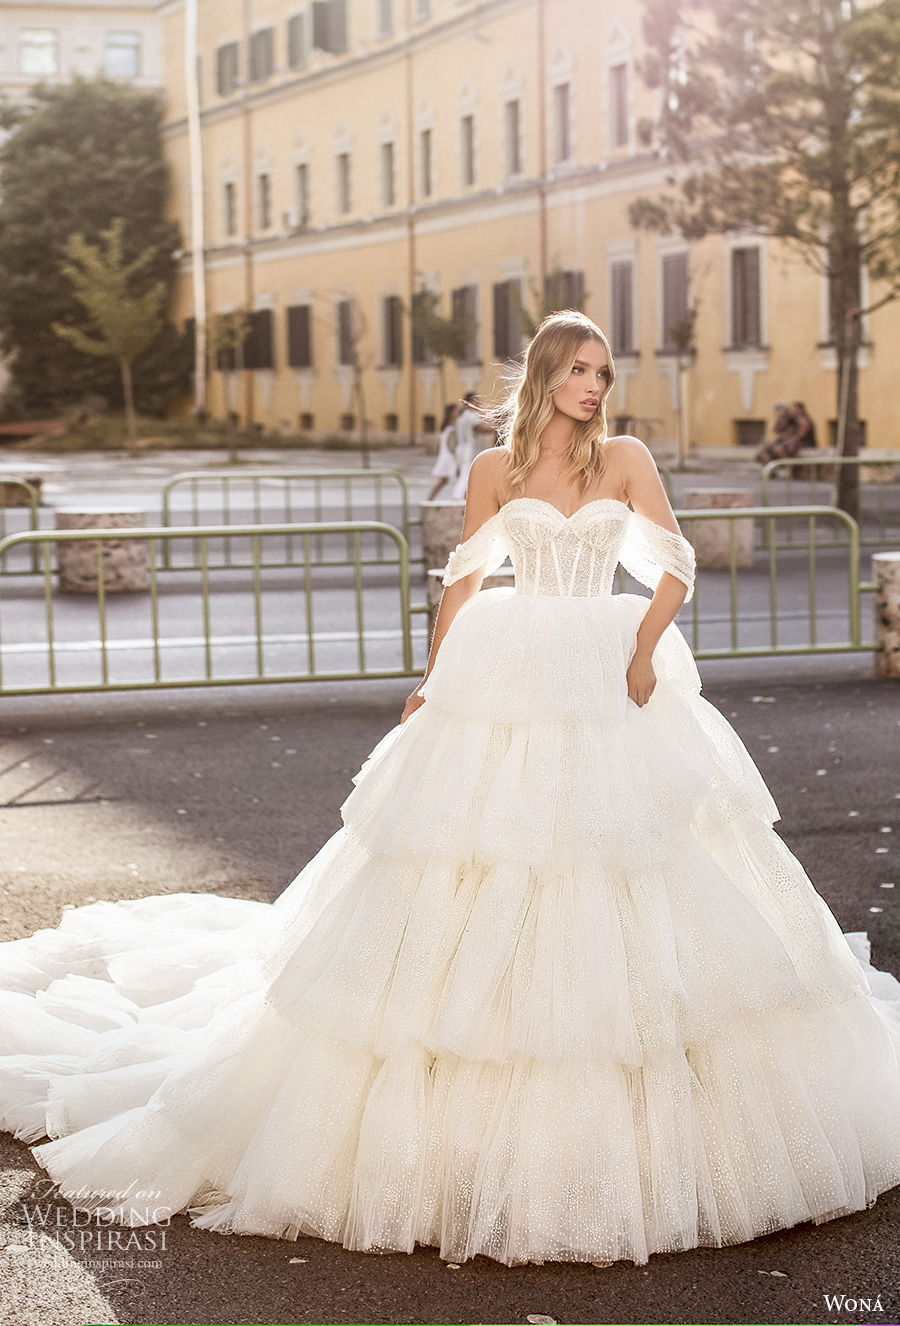 wona 2020 couture bridal off the shoulder sweetheart neckline heavily embellished bodice bustier tiered skirt romantic princess ball gown wedding dress mid back royal train (19) mv